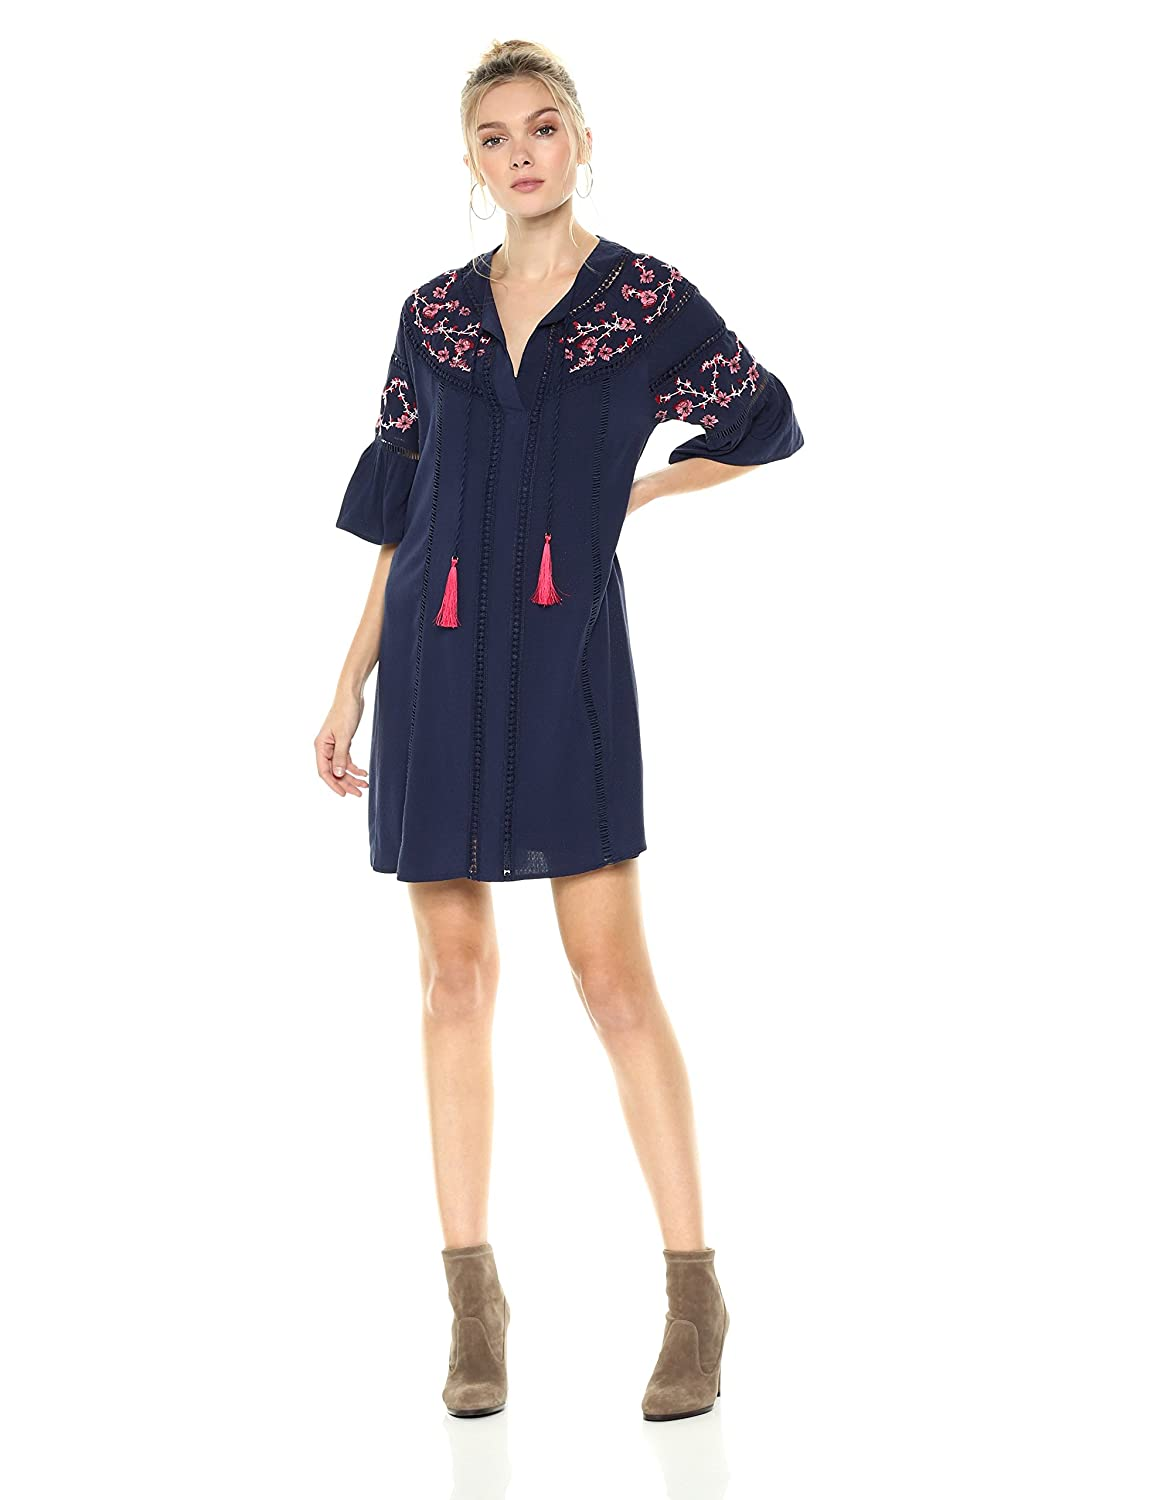 5f2ce514ad A bell-sleeve peasant dress made of shimmery fabric features tassel-trimmed  neck ties, intricate floral embroidery, and crochet dot trim for a look  that\'s ...